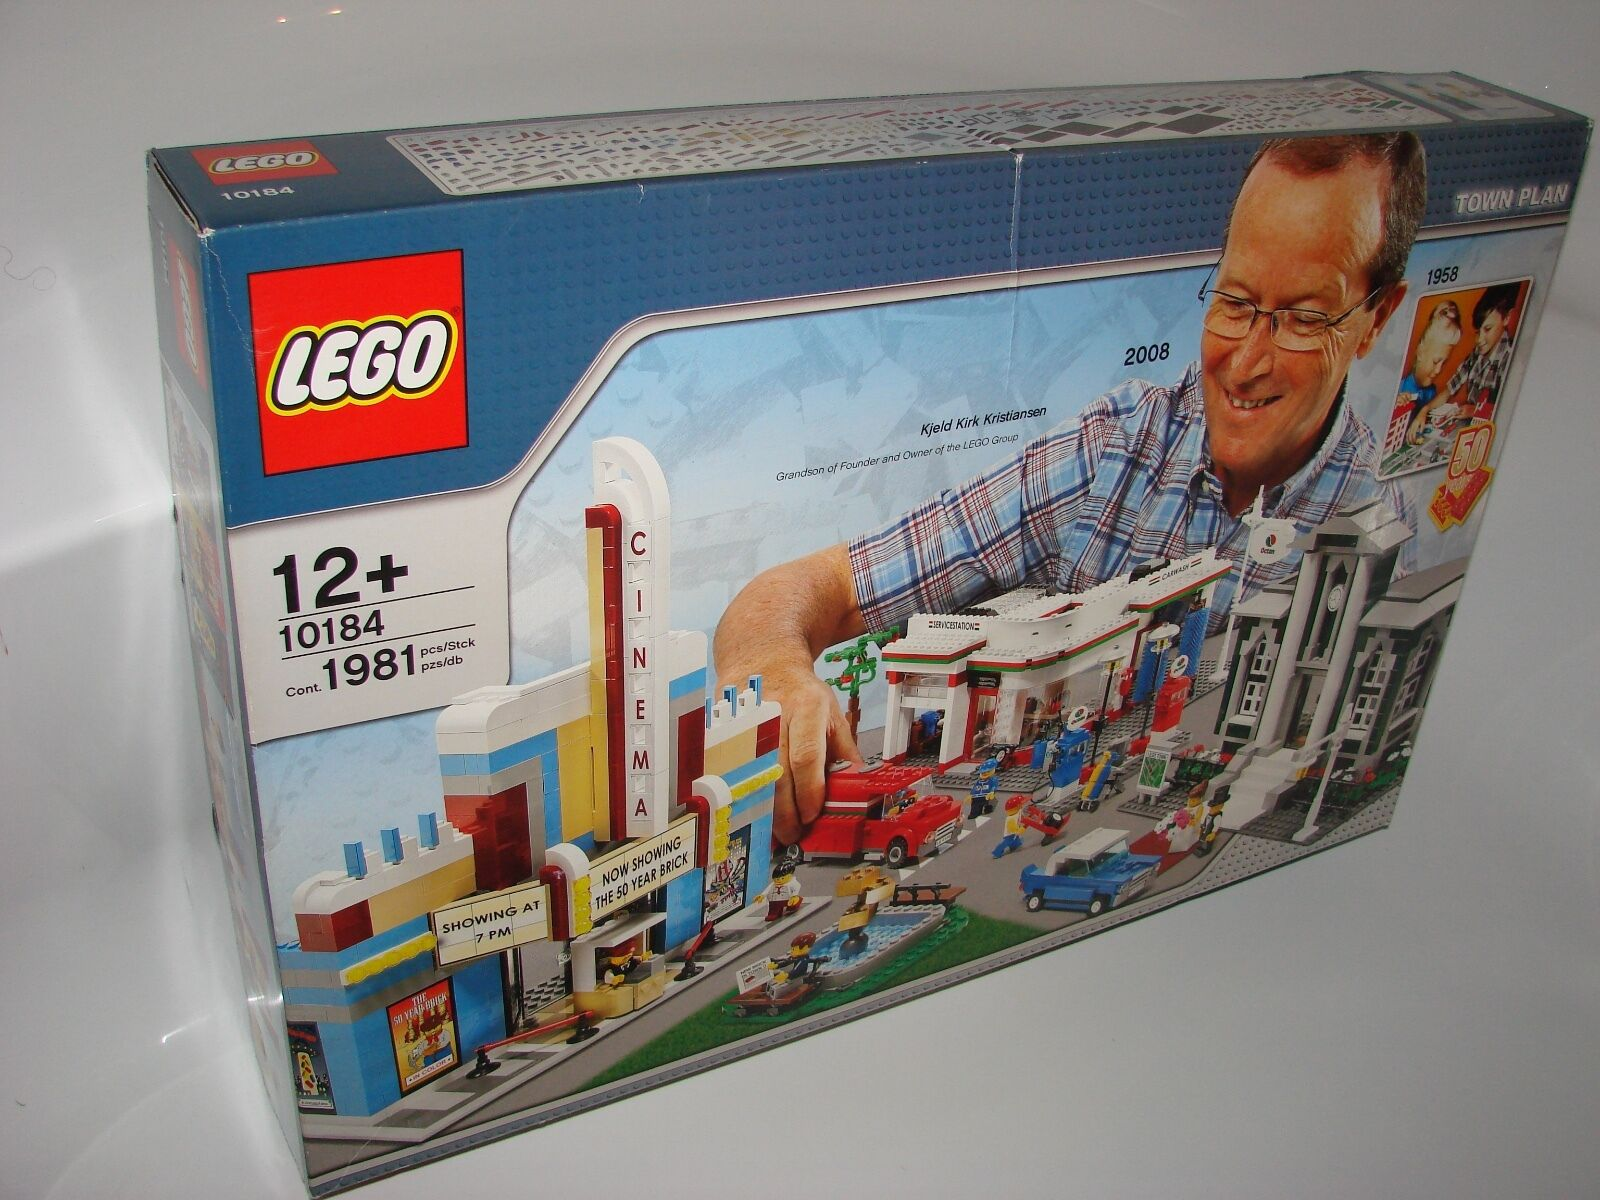 LEGO ® Creator Expert 10184 Town Plan NUOVO OVP NEW MISB NRFB